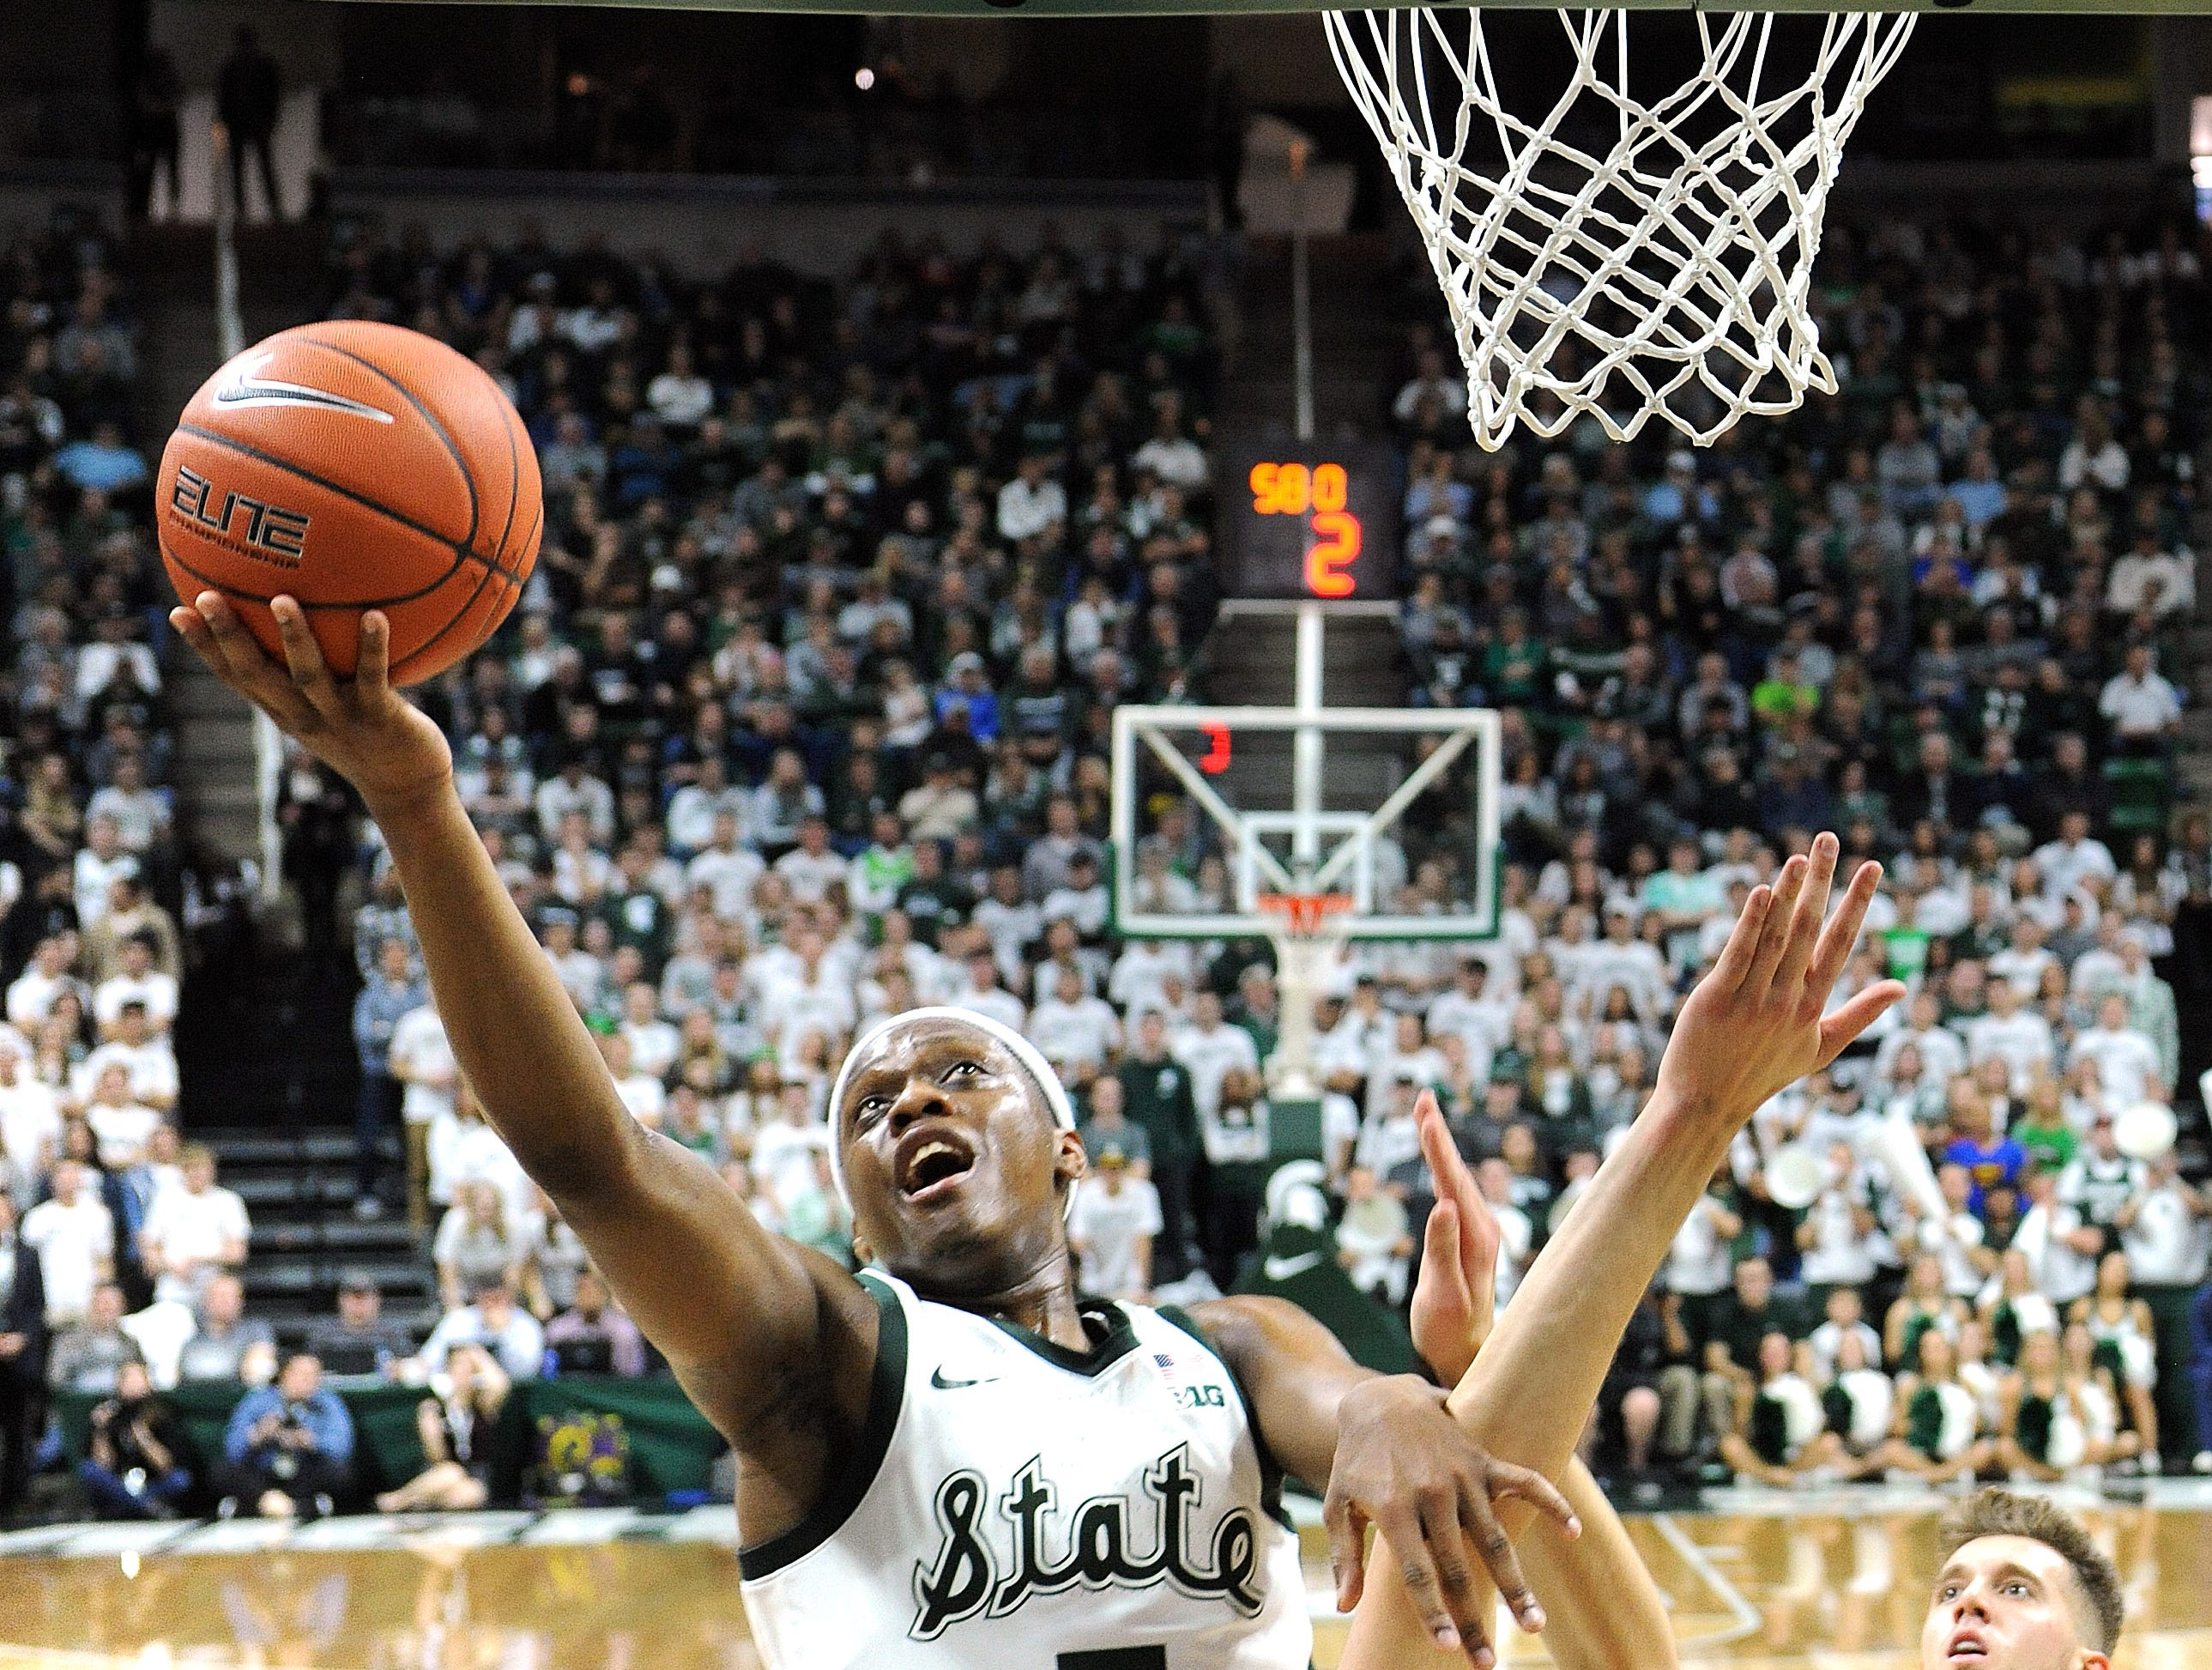 Cassisu Winston drives in, and scores off the glass in the first half.